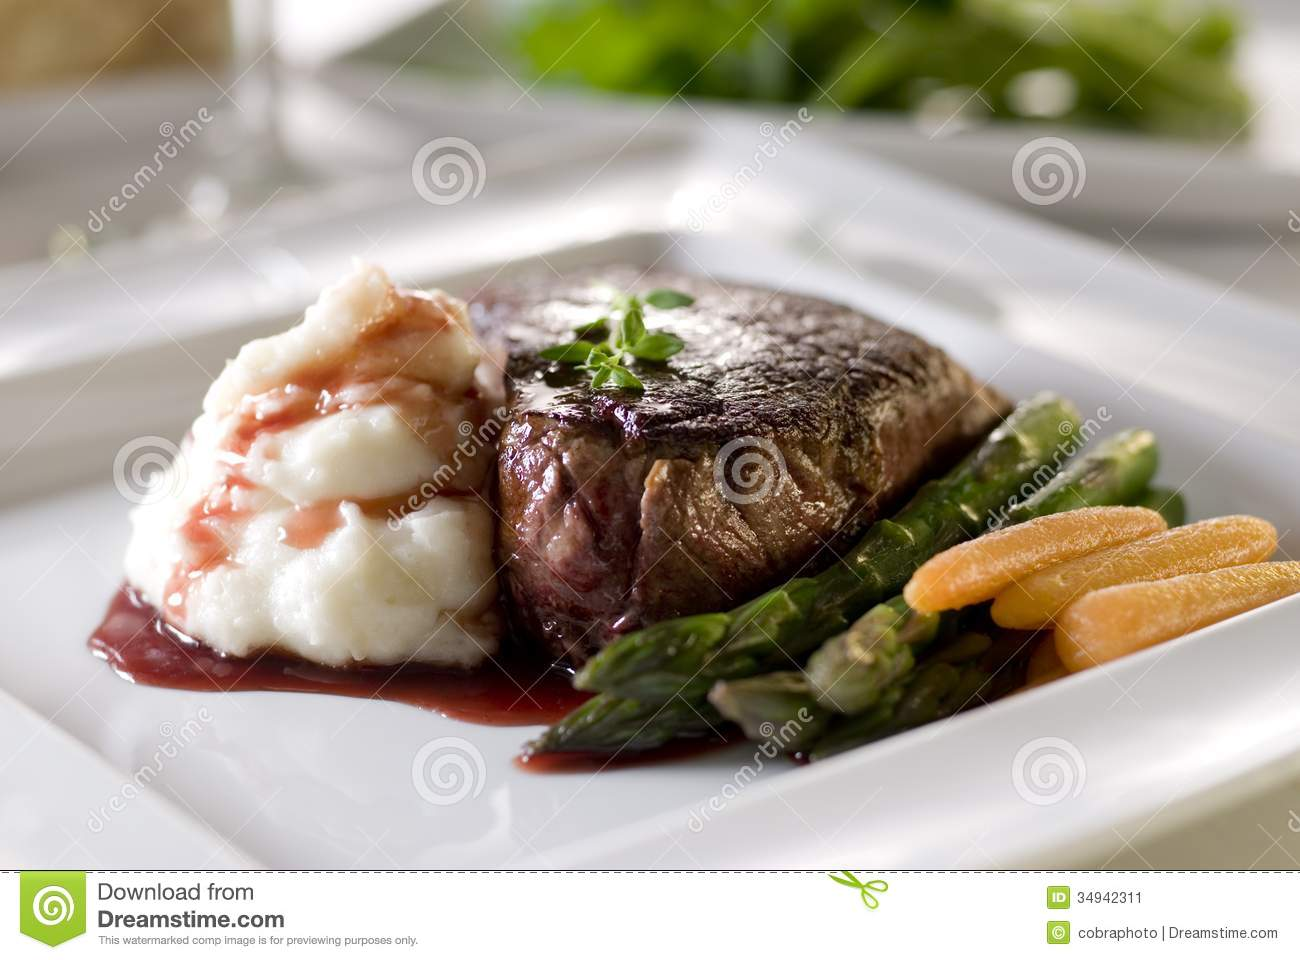 Steak stock image. Image of sauces, meat, asparagus